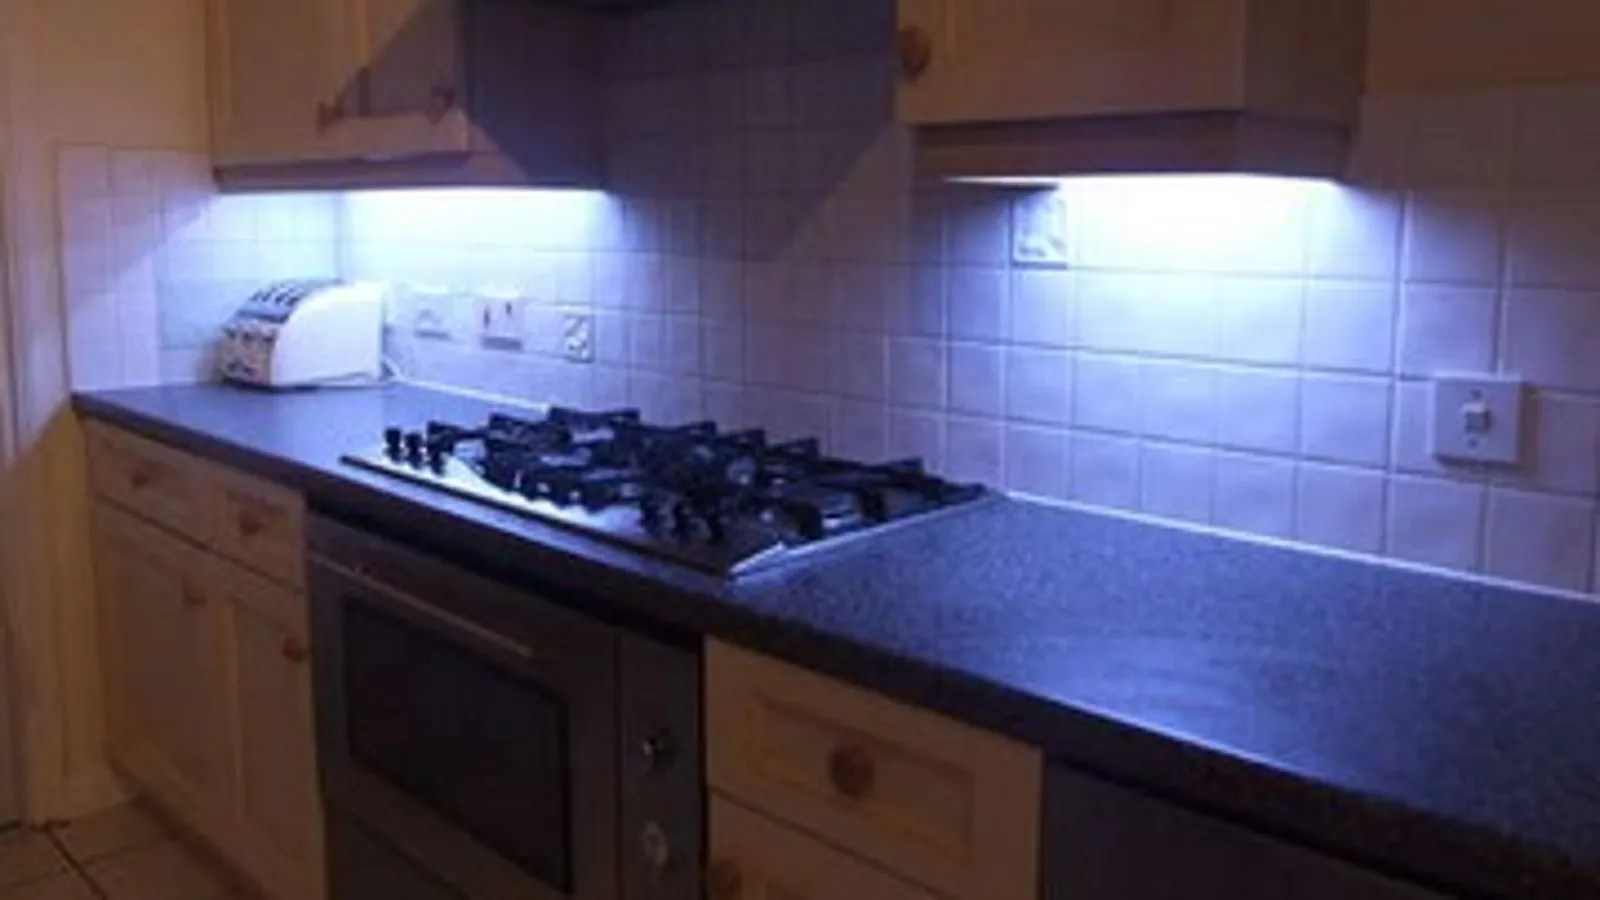 Under Cabinet Lighting In Kitchen Diy Under Cabinet Led Lighting With Fade Effects